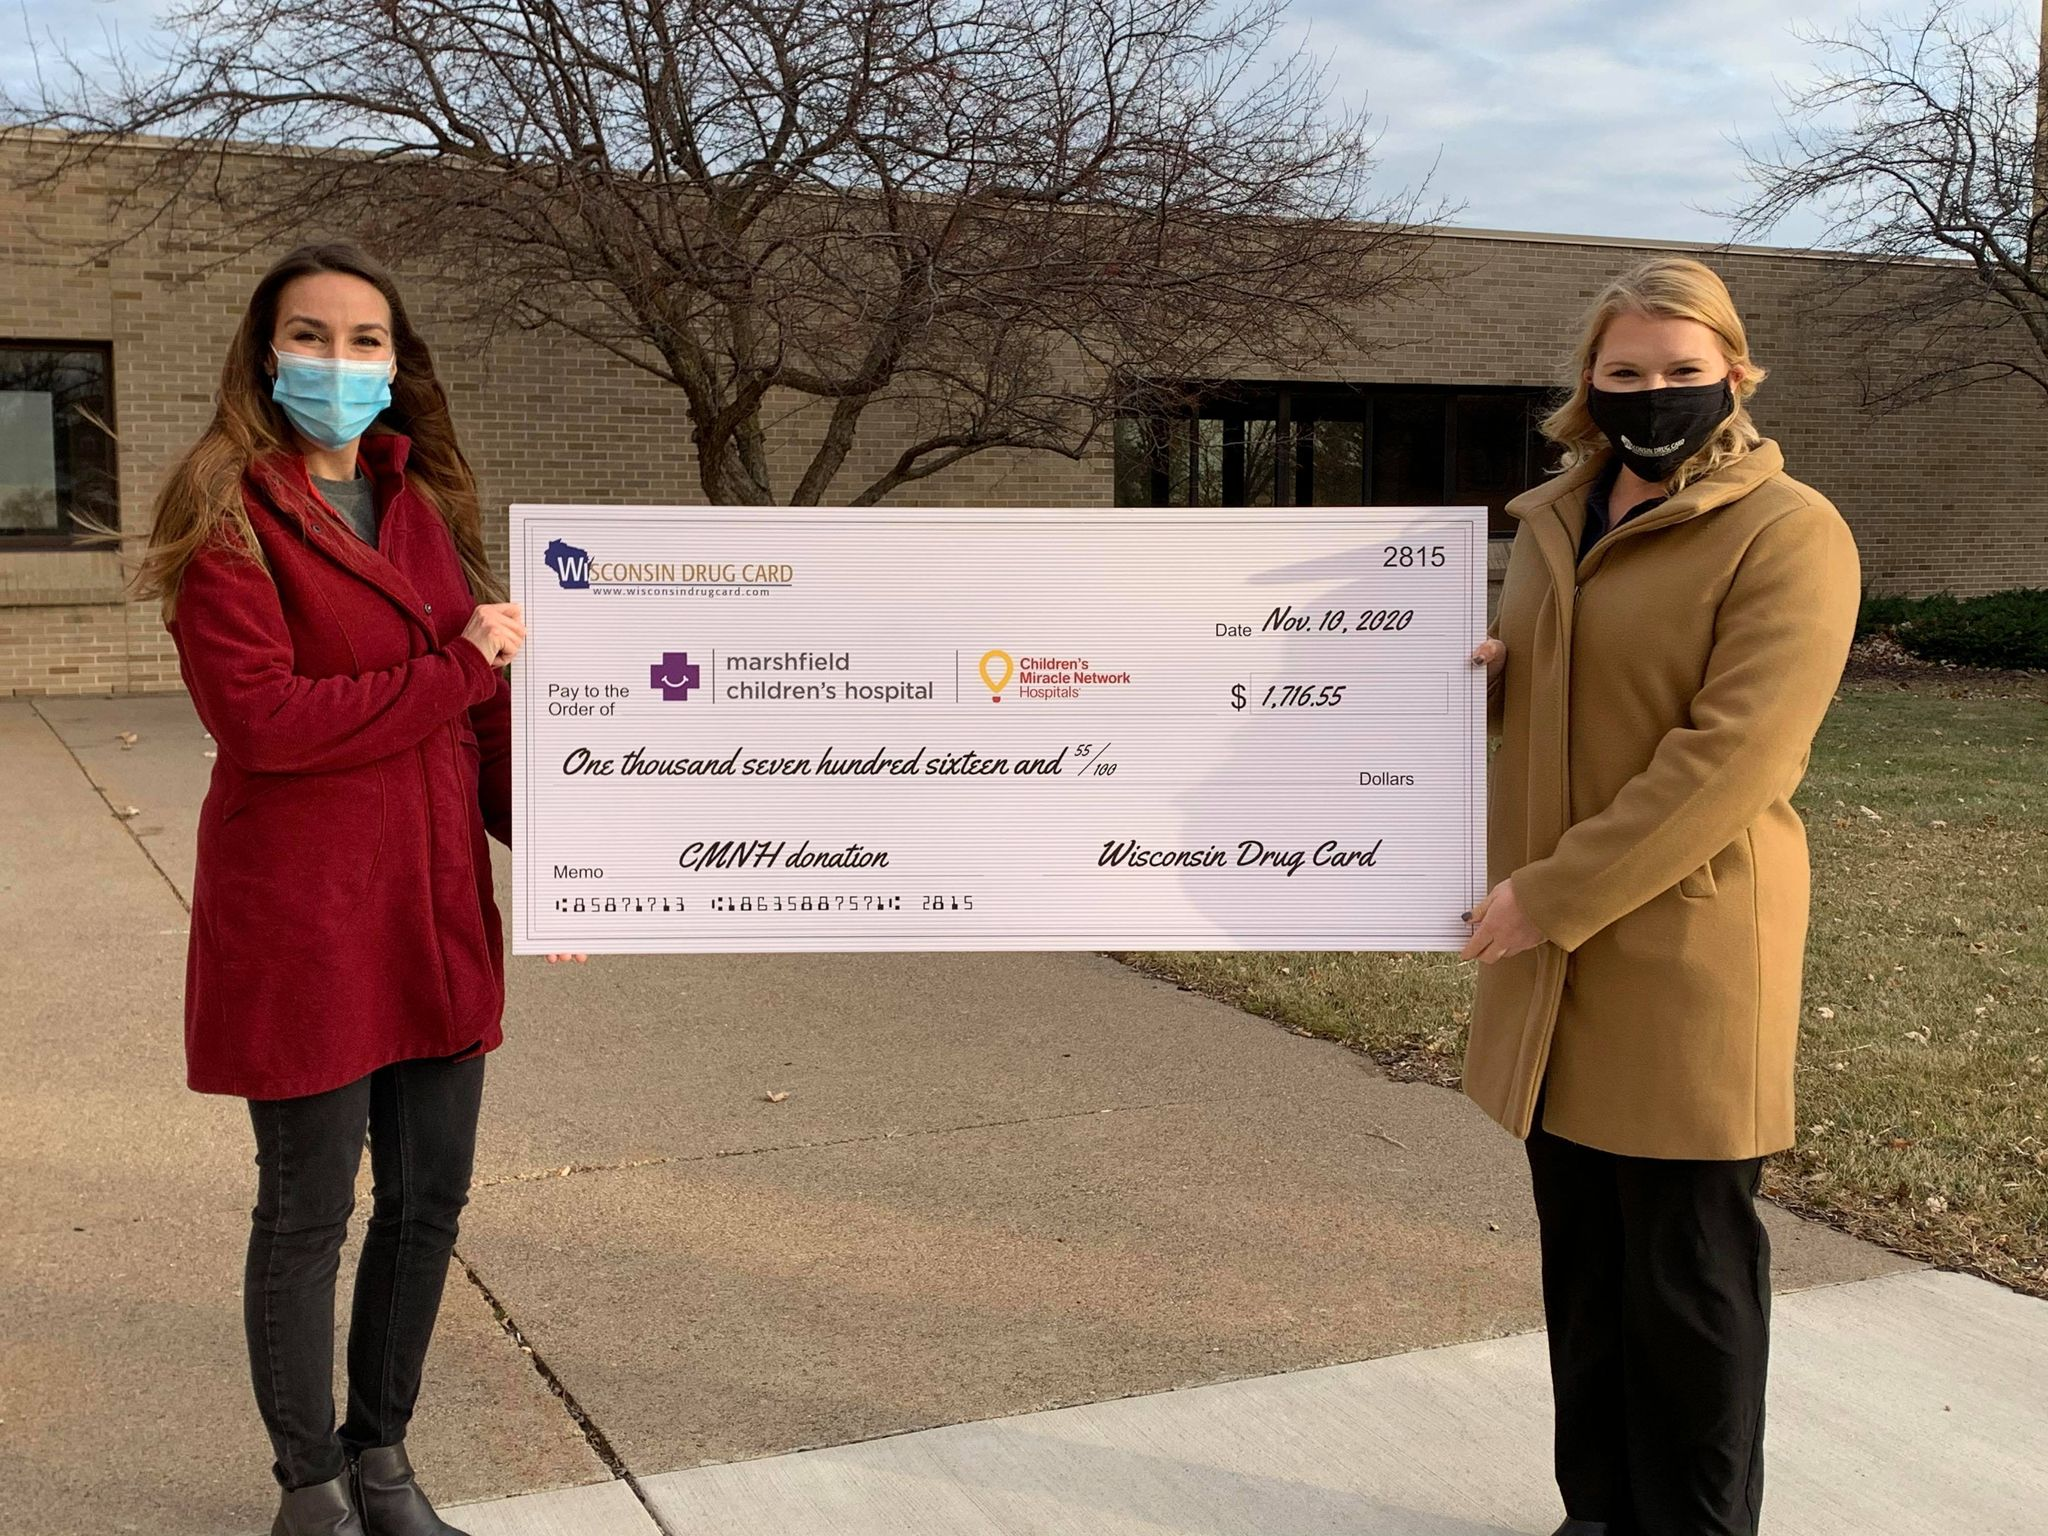 Wisconsin Drug Card and United Networks of America Help Support Marshfield Children's Hospital